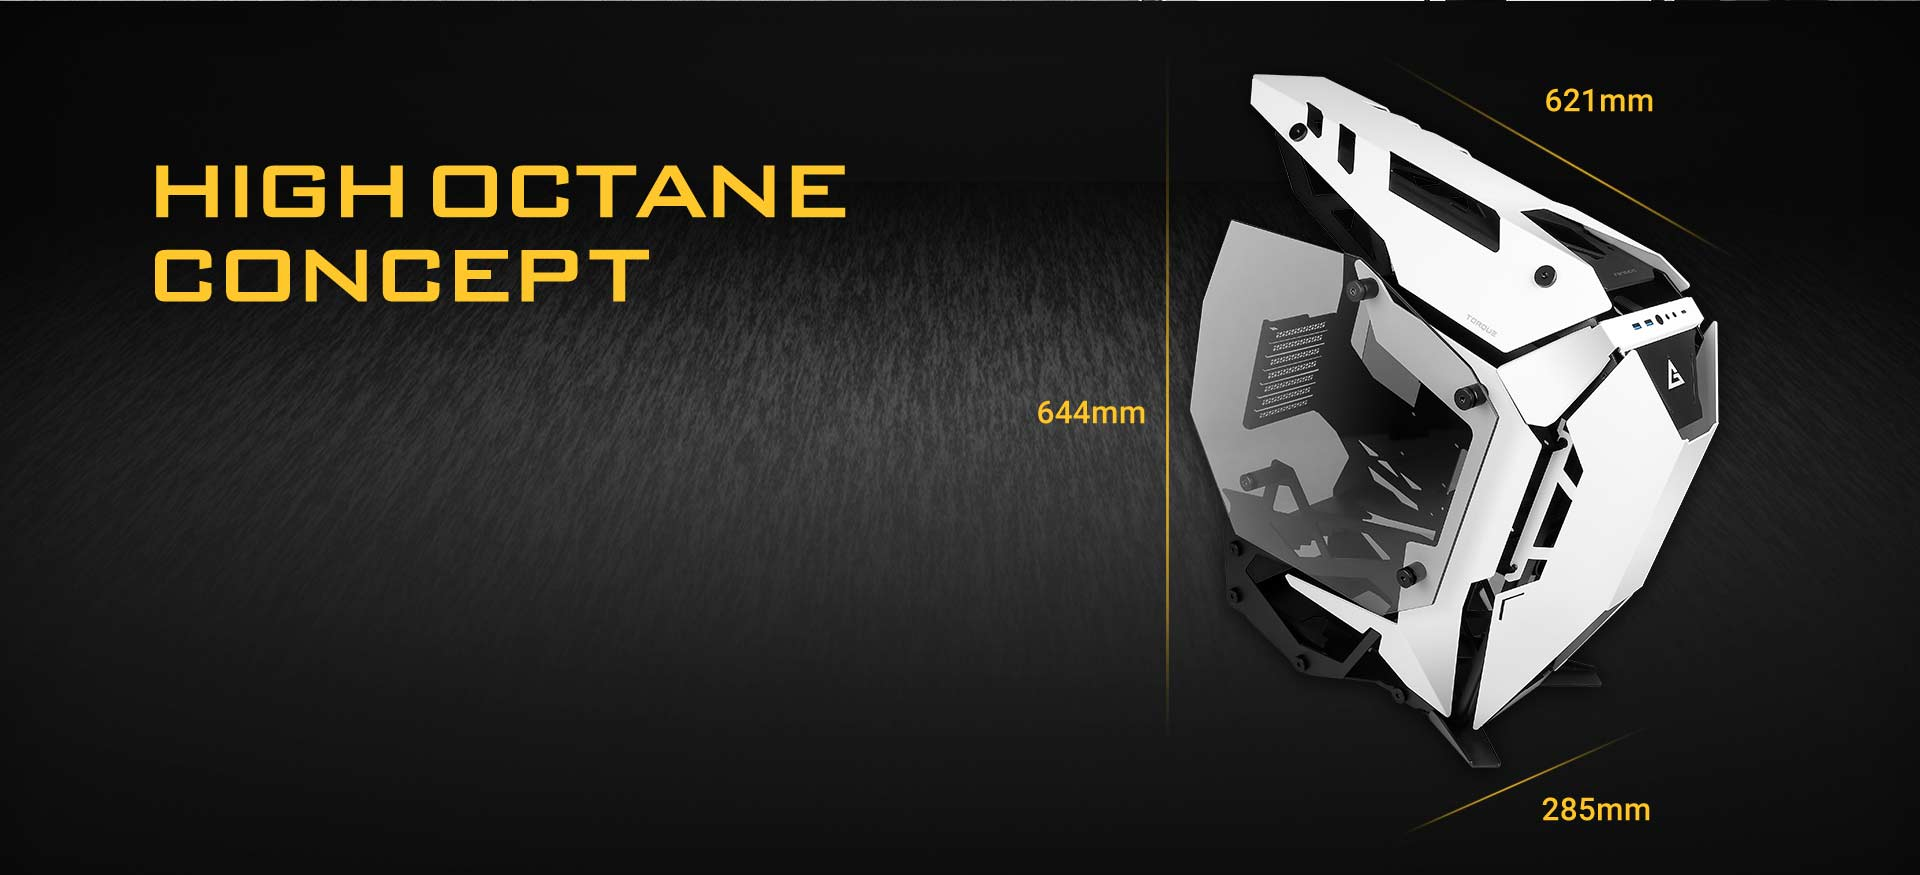 Antec Torque Angled Down to the Right with graphics and text indicating 644mm height, 285mm width and 621mm length. There is header text that reads: HIGH OCTANE CONCEPT